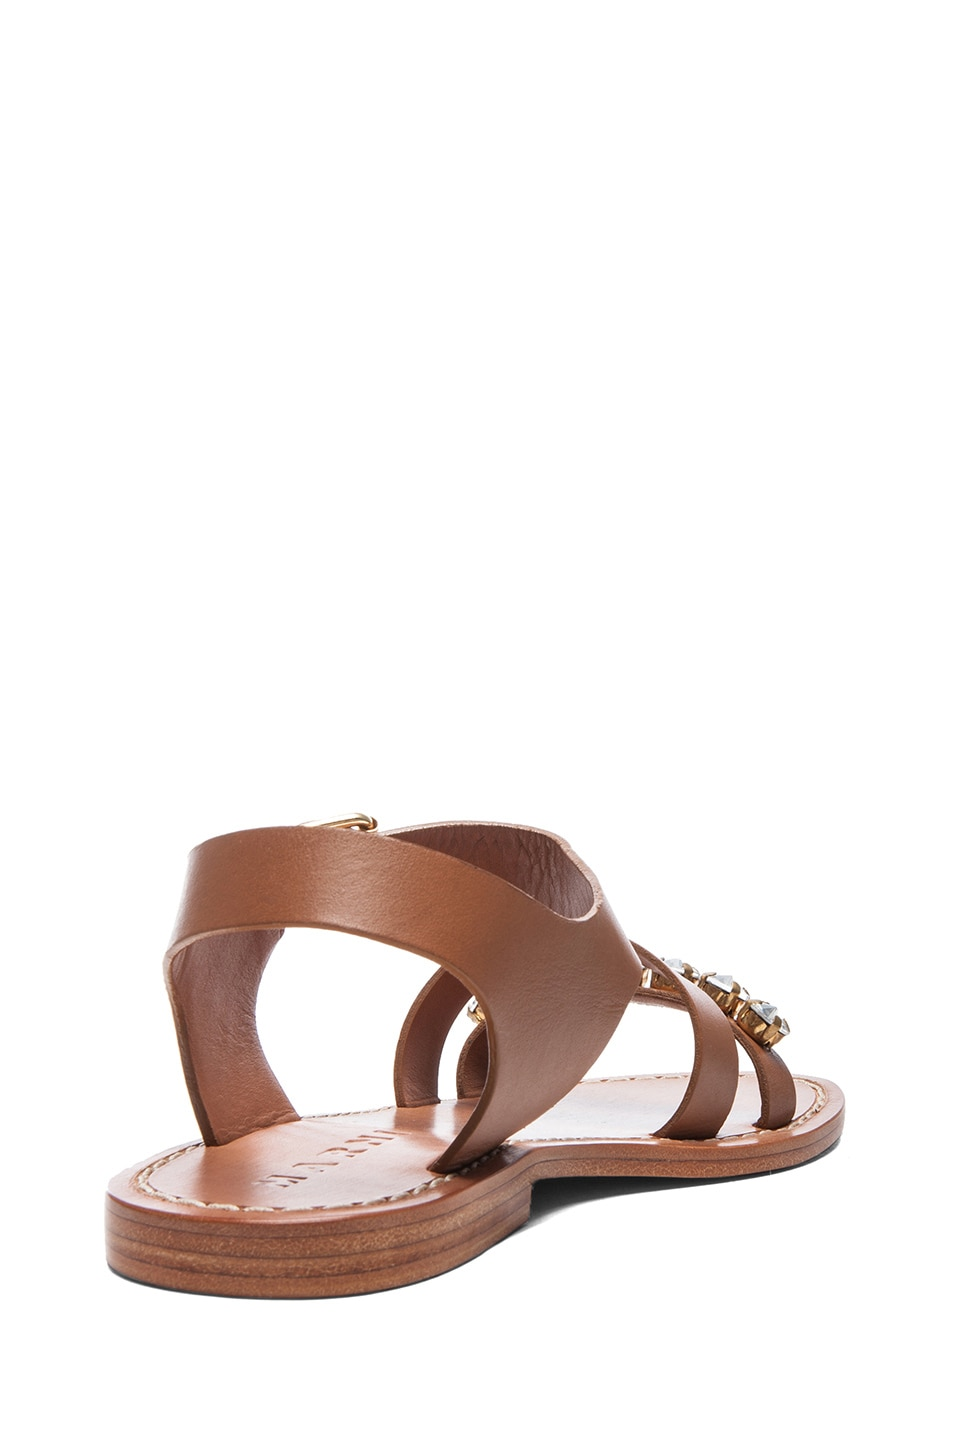 Image 3 of Marni Embellished Leather Sandals with Small Stones in Caramel